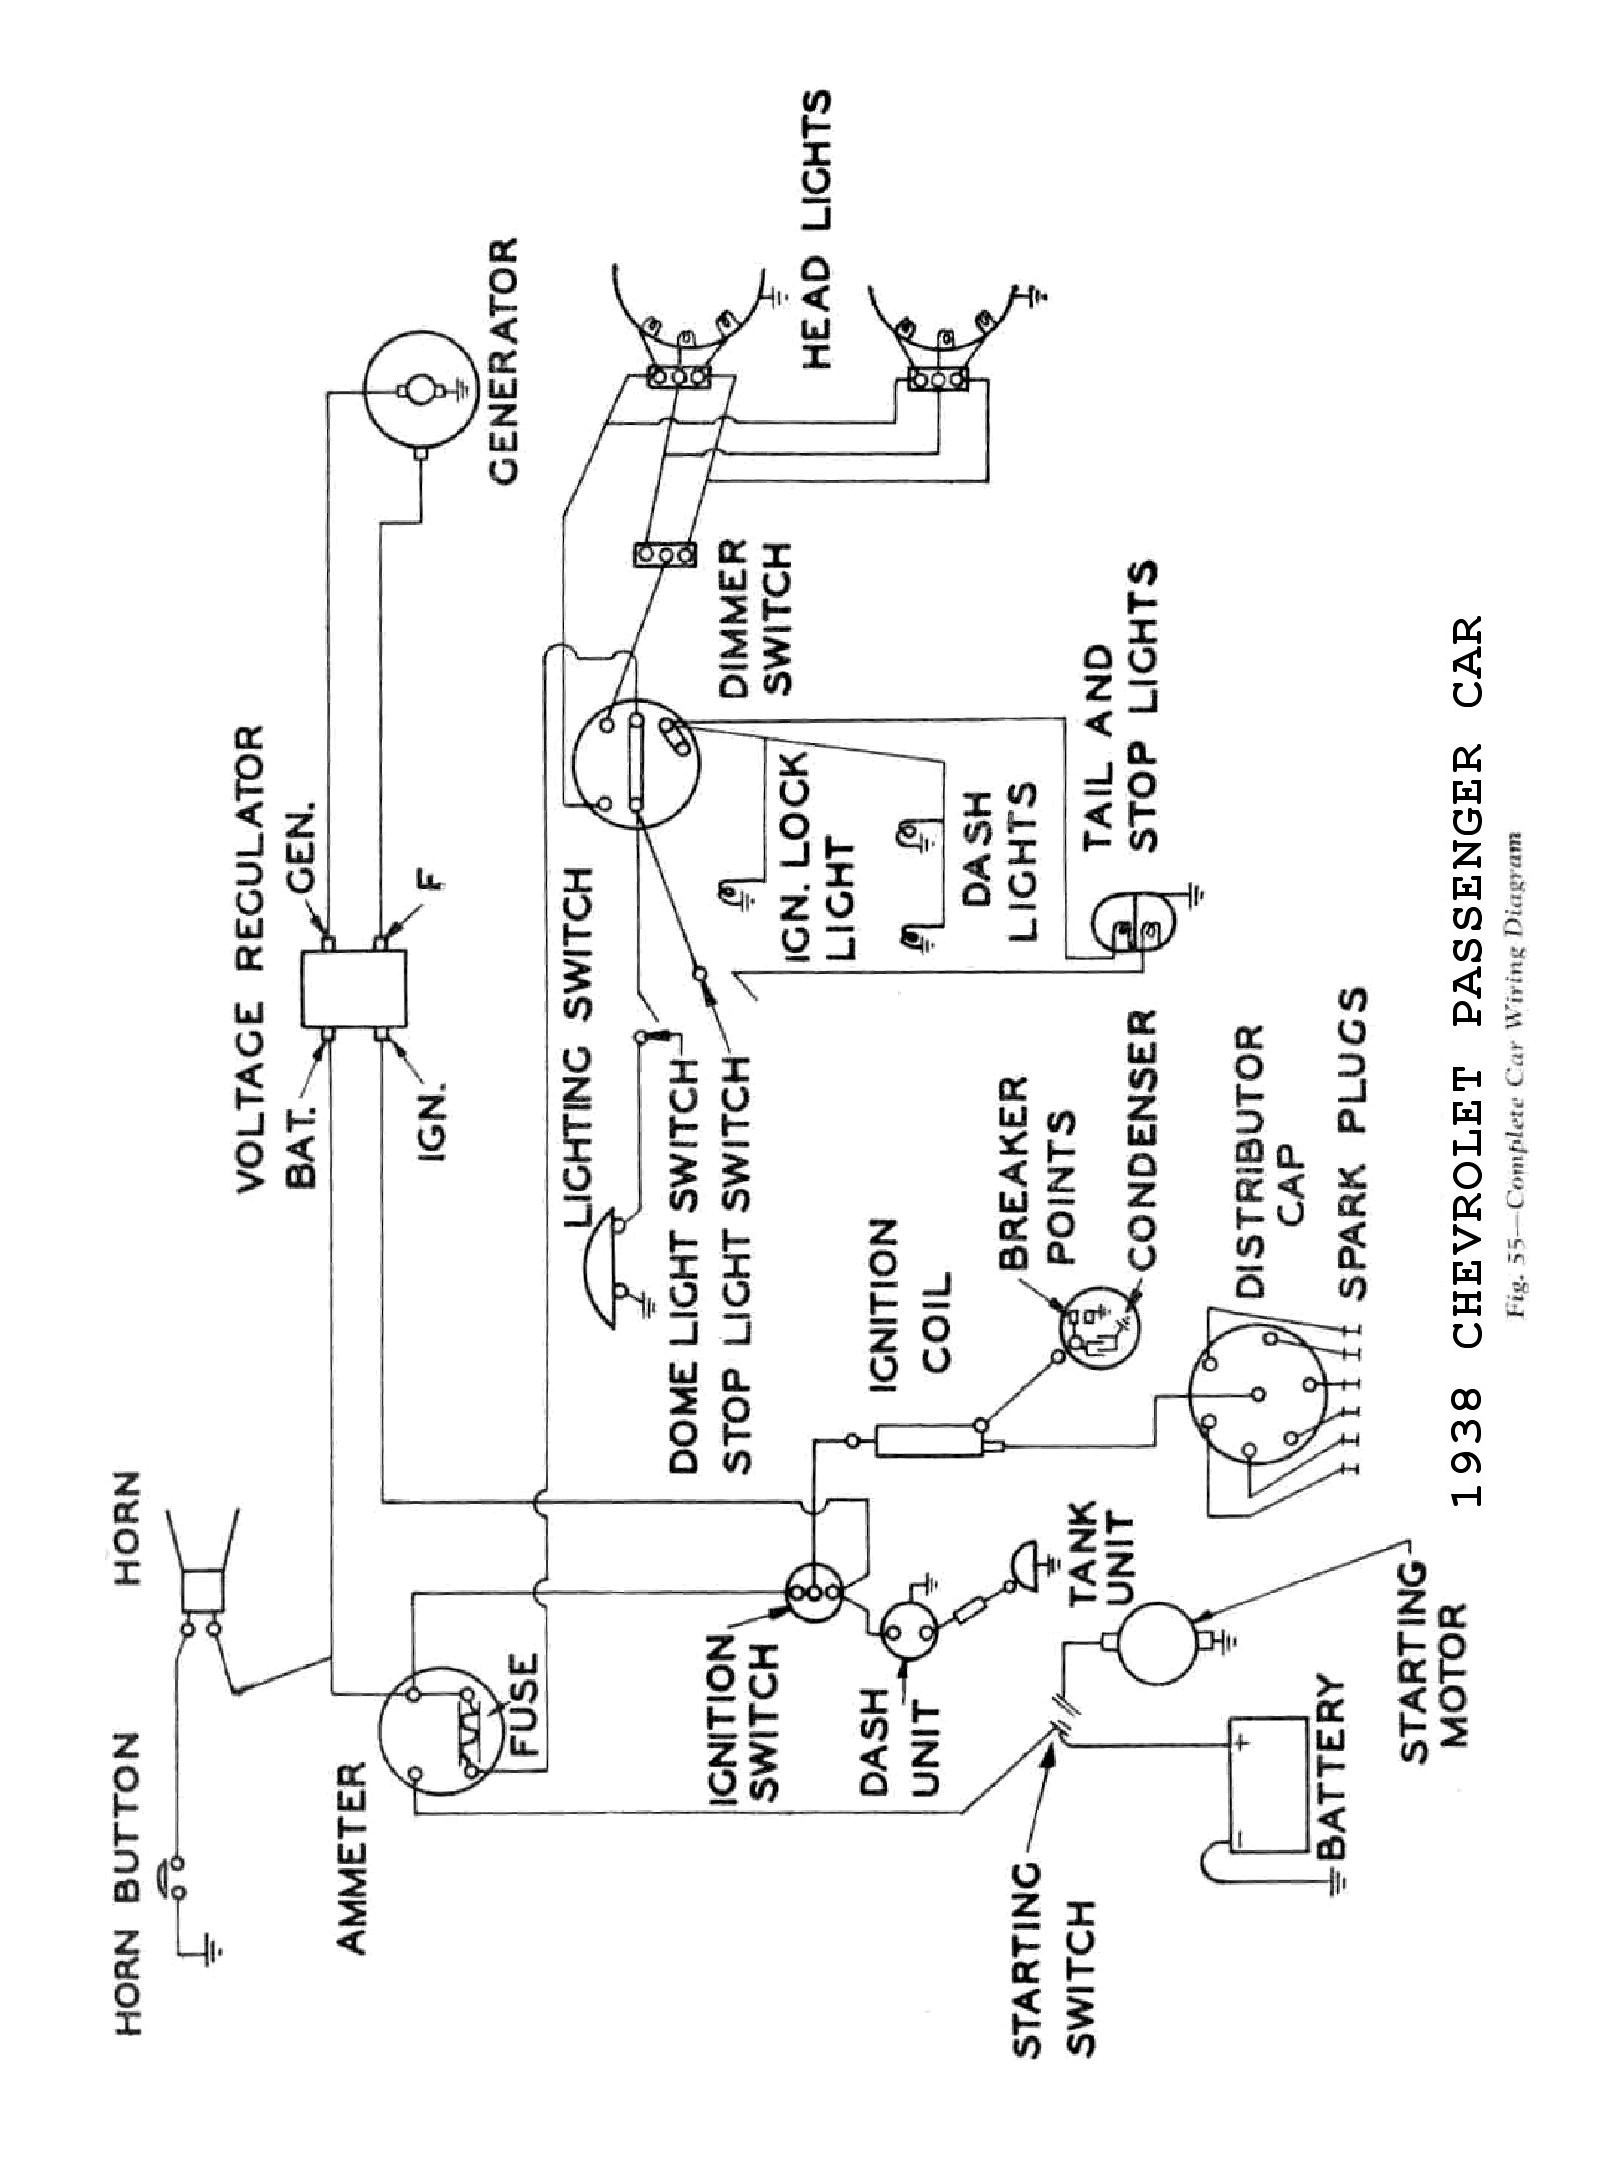 1930 model a ignition wiring diagram